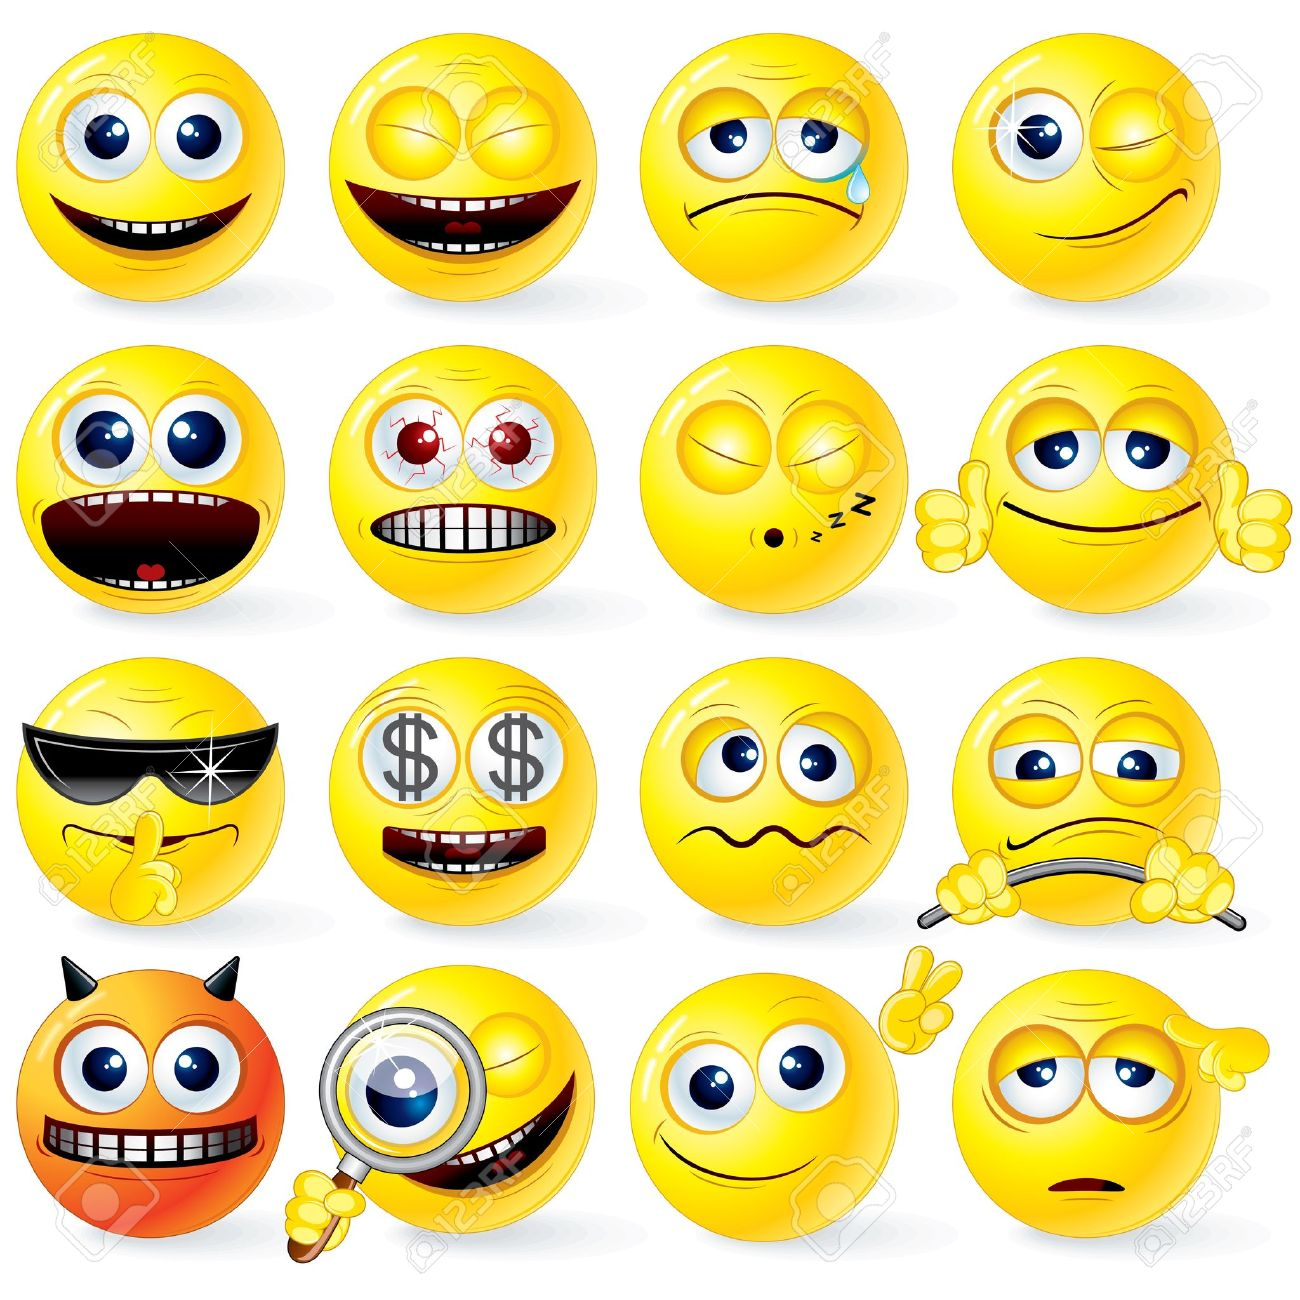 Large set of isolated Yellow Cartoon Smileys with positive and negative emotions, gestures, poses - detailed vector illustration for your design - 9151347